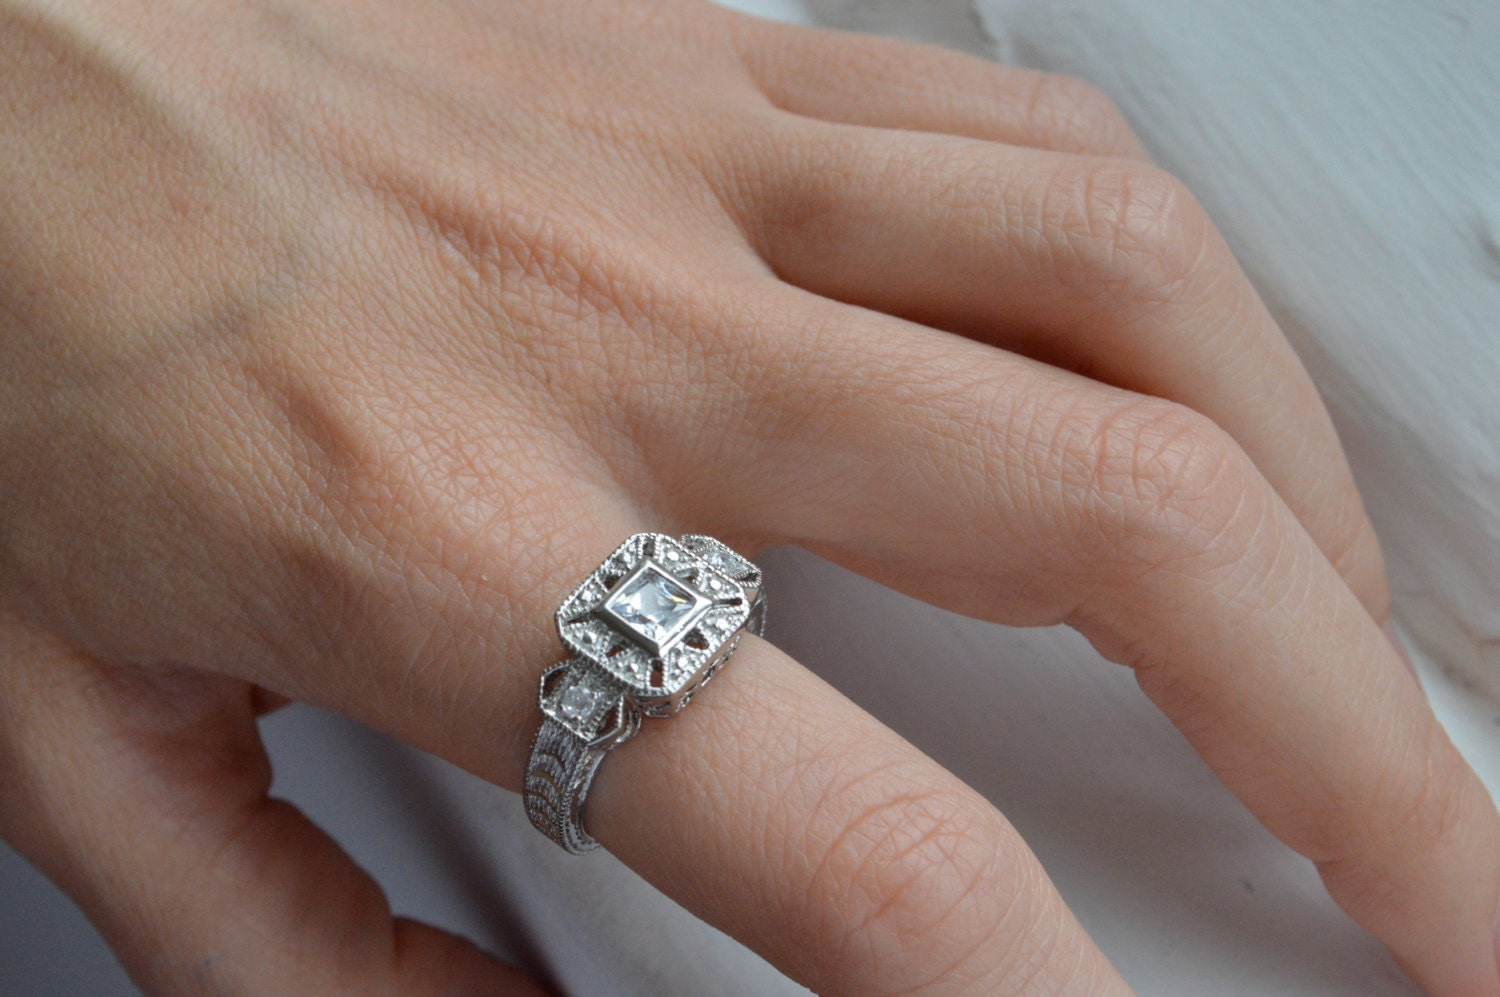 Silver Art Deco Ring Antique Filigree Ring Princess Cut